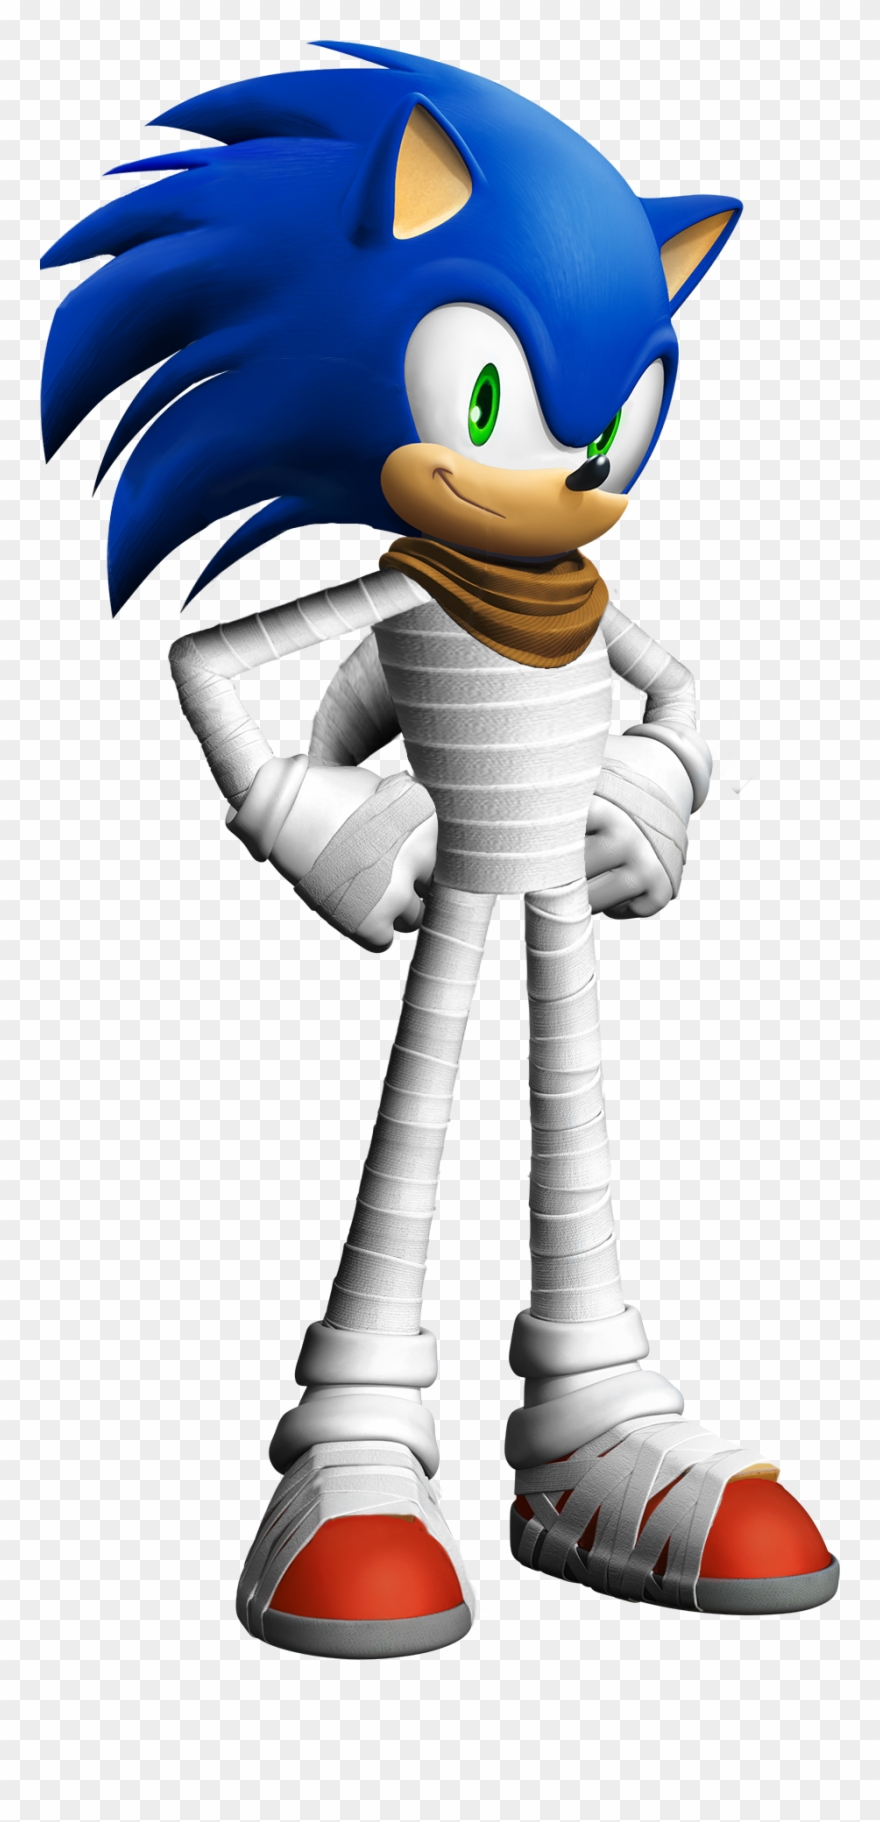 Sonic The Hedgehog Clipart Behind Sonic Forces Game Grumps Png Download 334455 Pinclipart